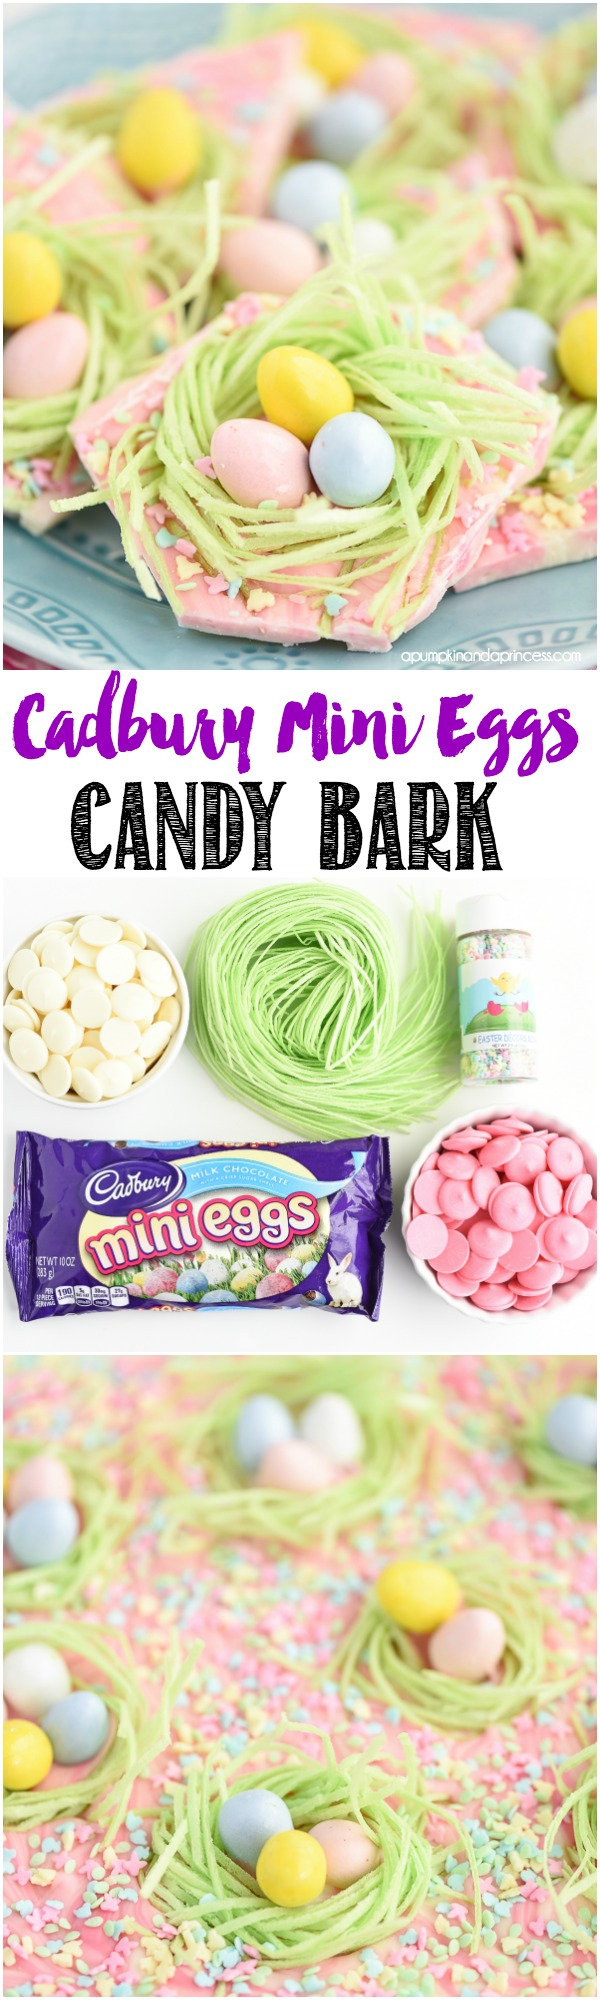 Cadbury Mini Eggs Candy Bark Recipe - pink and white chocolate marble candy bark topped with candy grass nests, Cadbury mini eggs and sprinkles.